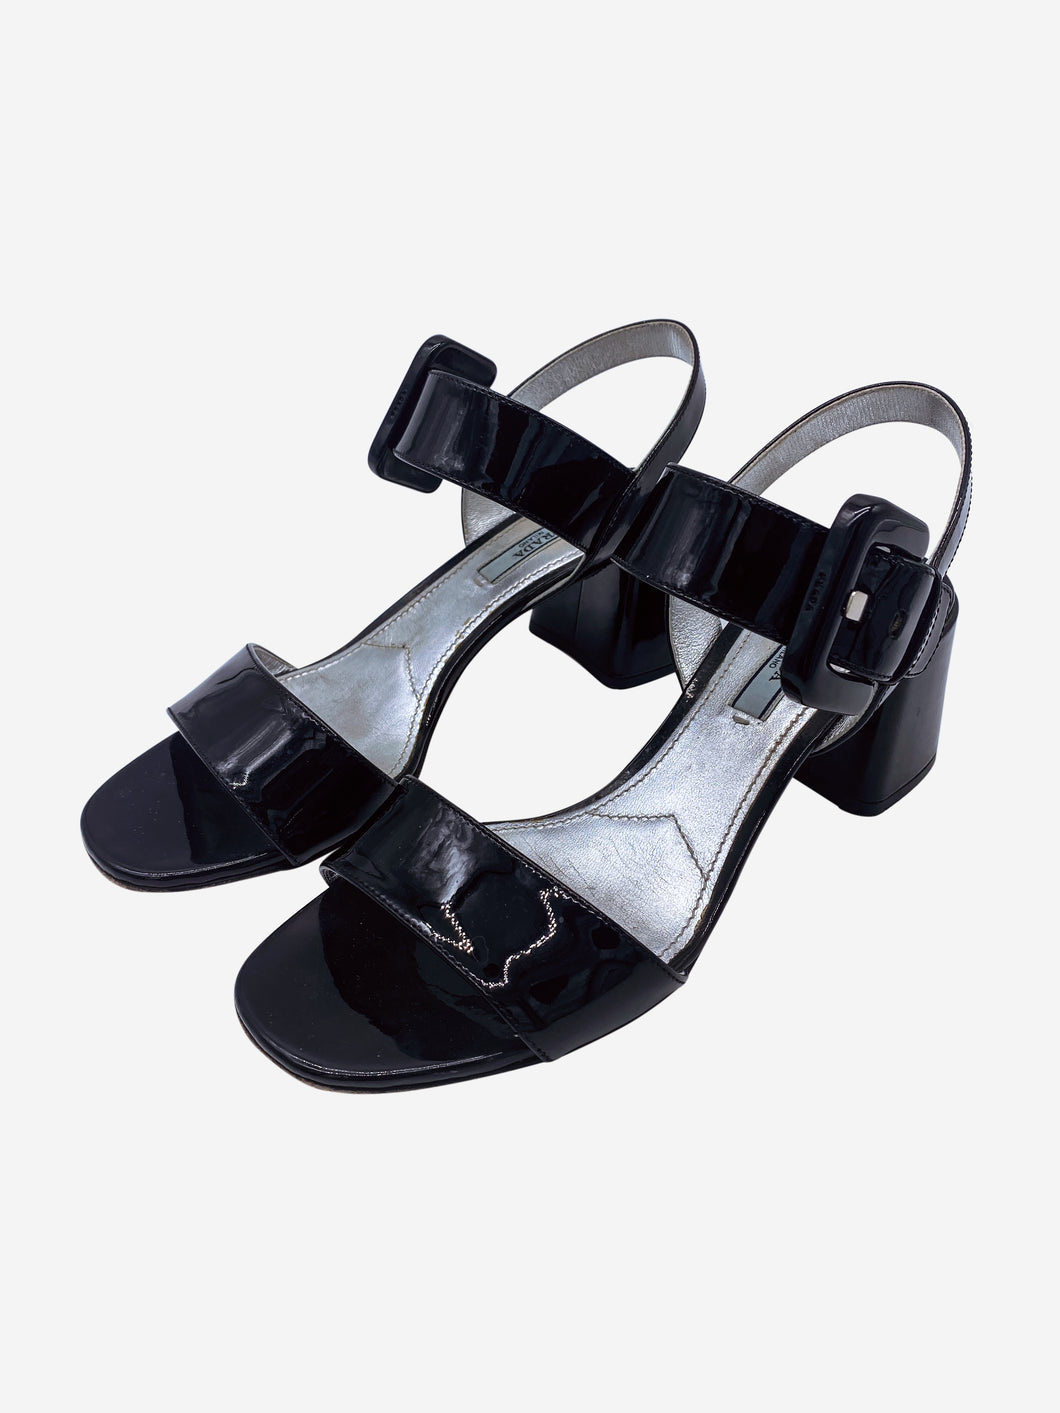 Black painted open toe block heeled sandals - size EU 38.5